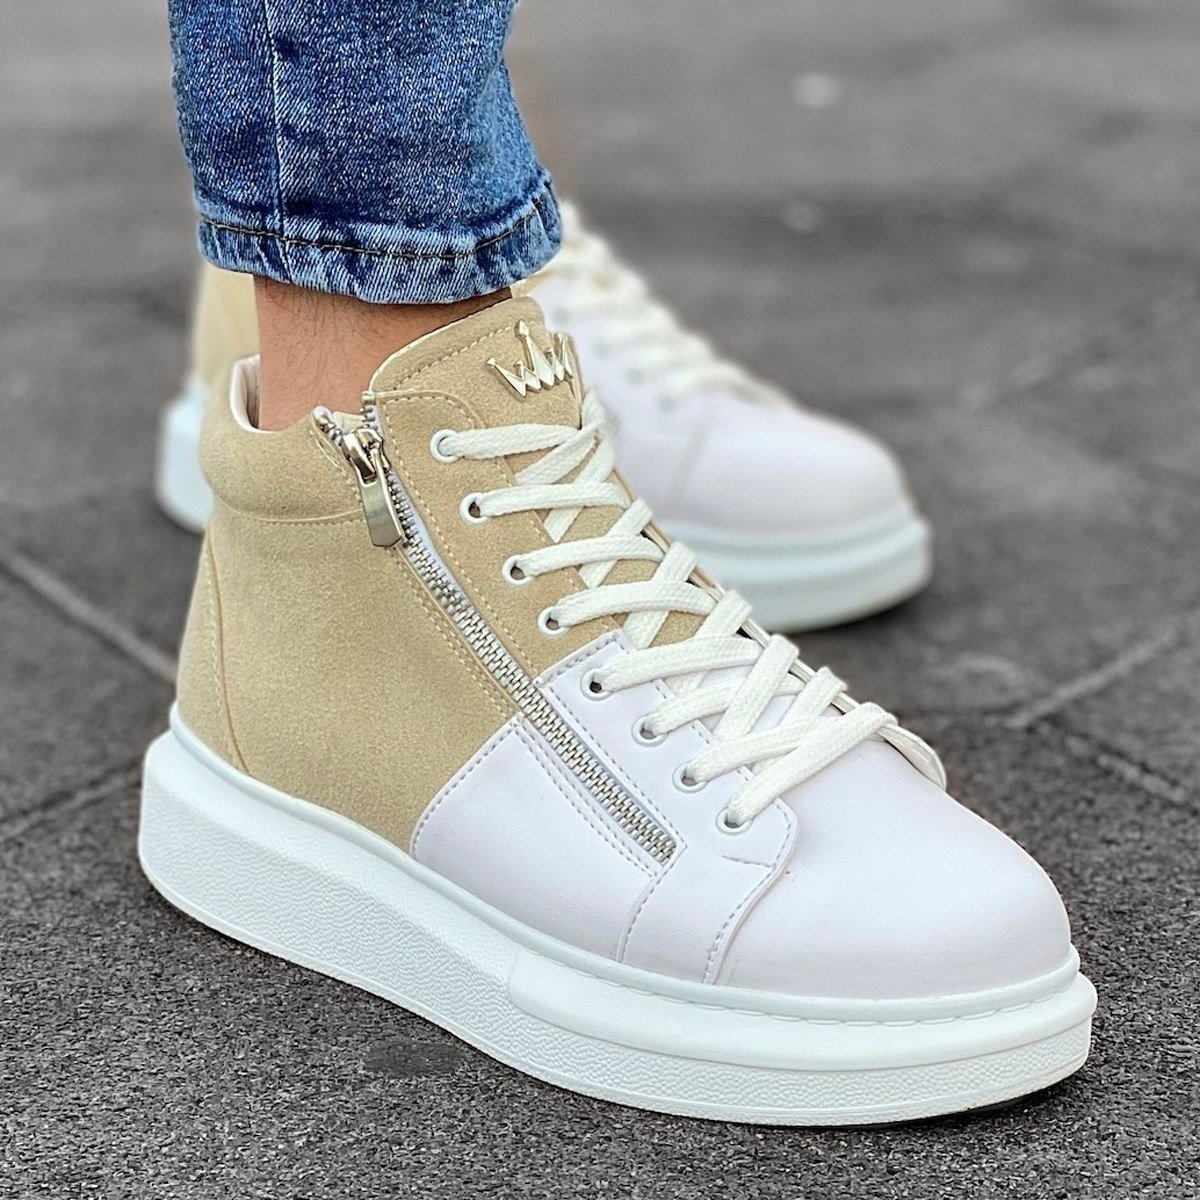 Hype Sole Zipped Style High Top Sneakers in Cream-White